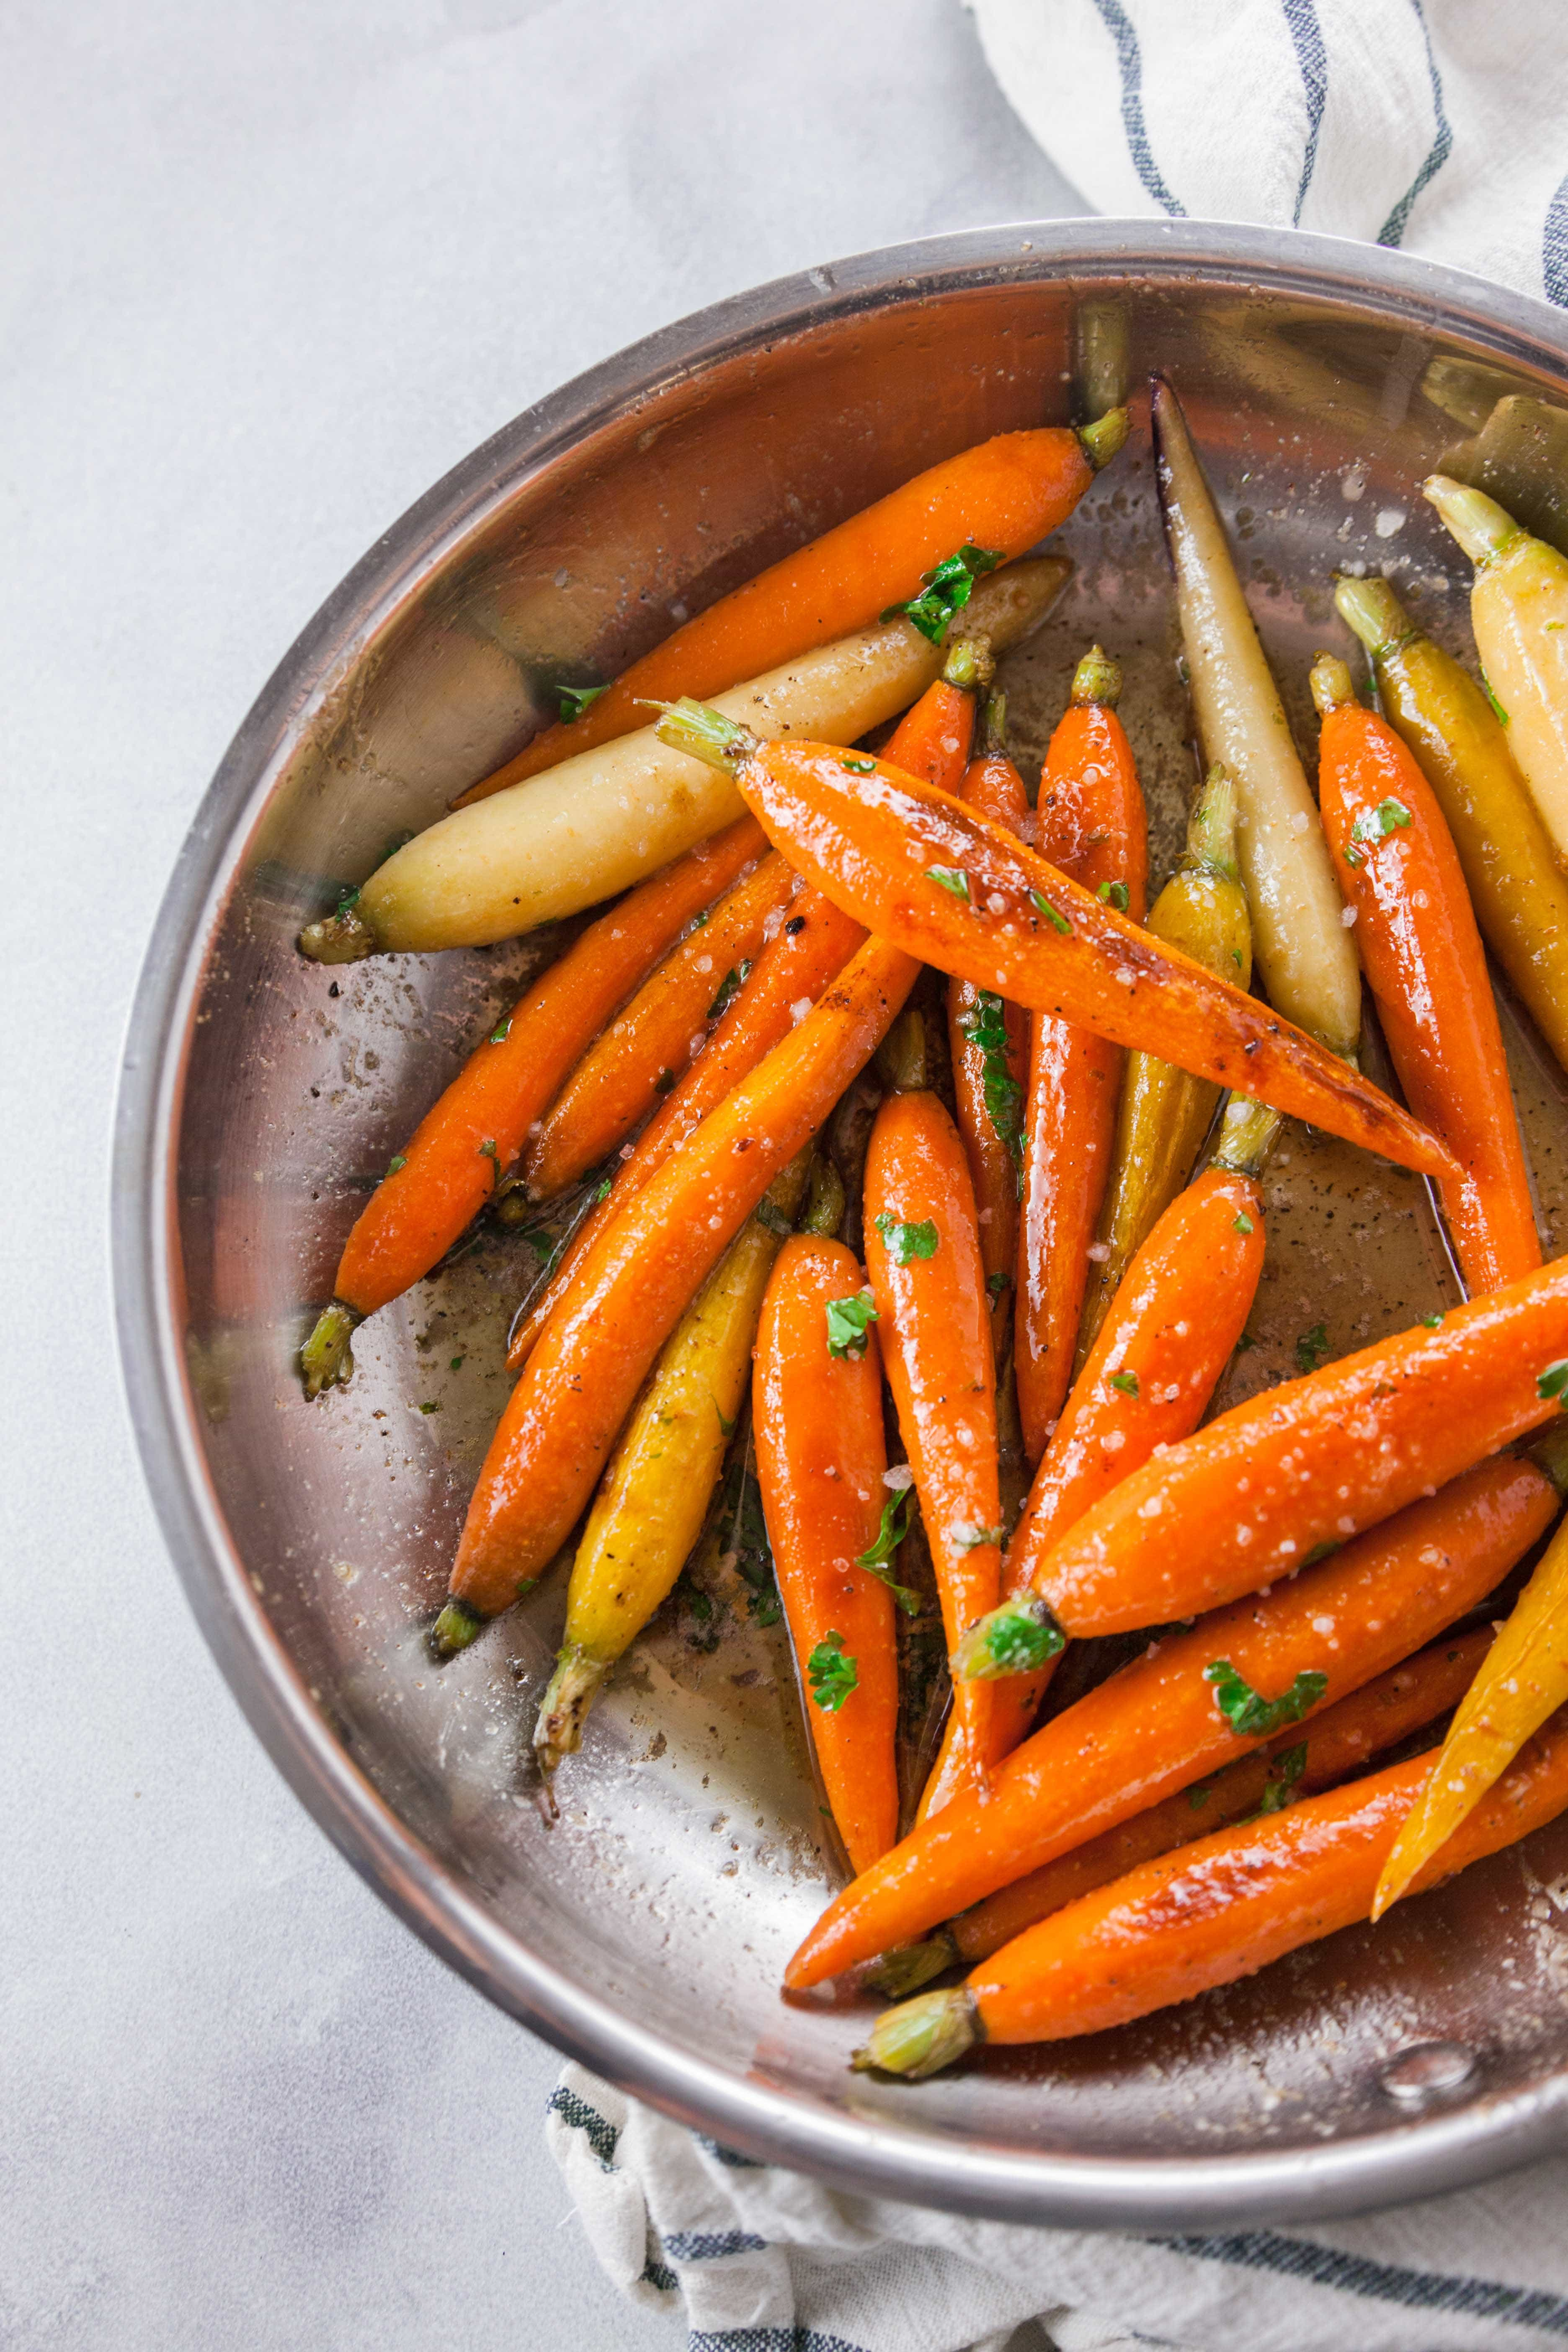 Maple Glazed Roasted Carrots Cold Weather Comfort